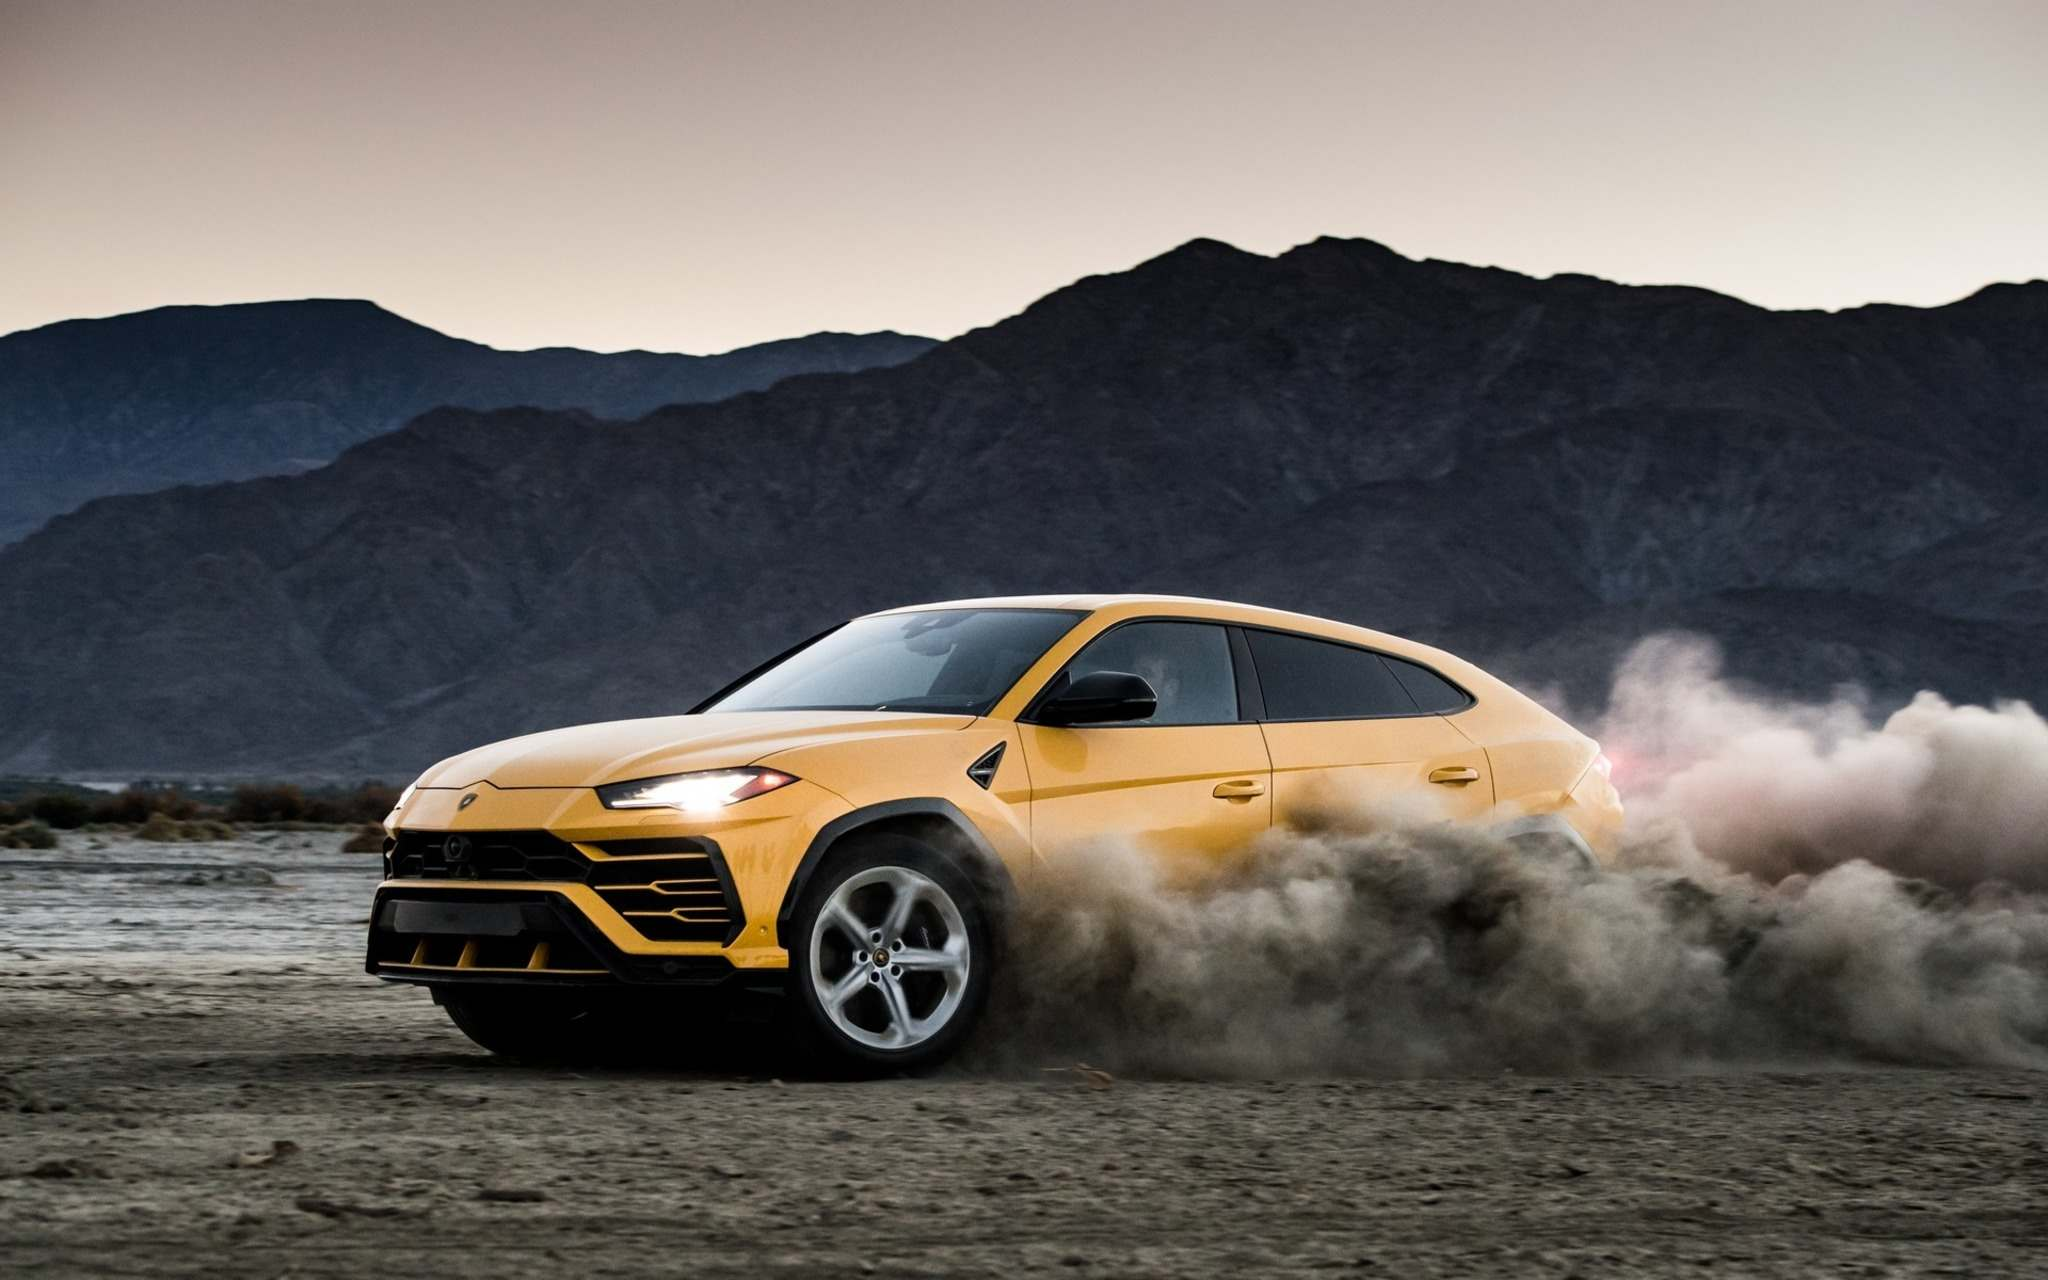 The unique shape of Lamborghini's Urus sets it apart from other SUVs. (Photos by Lamborghini)